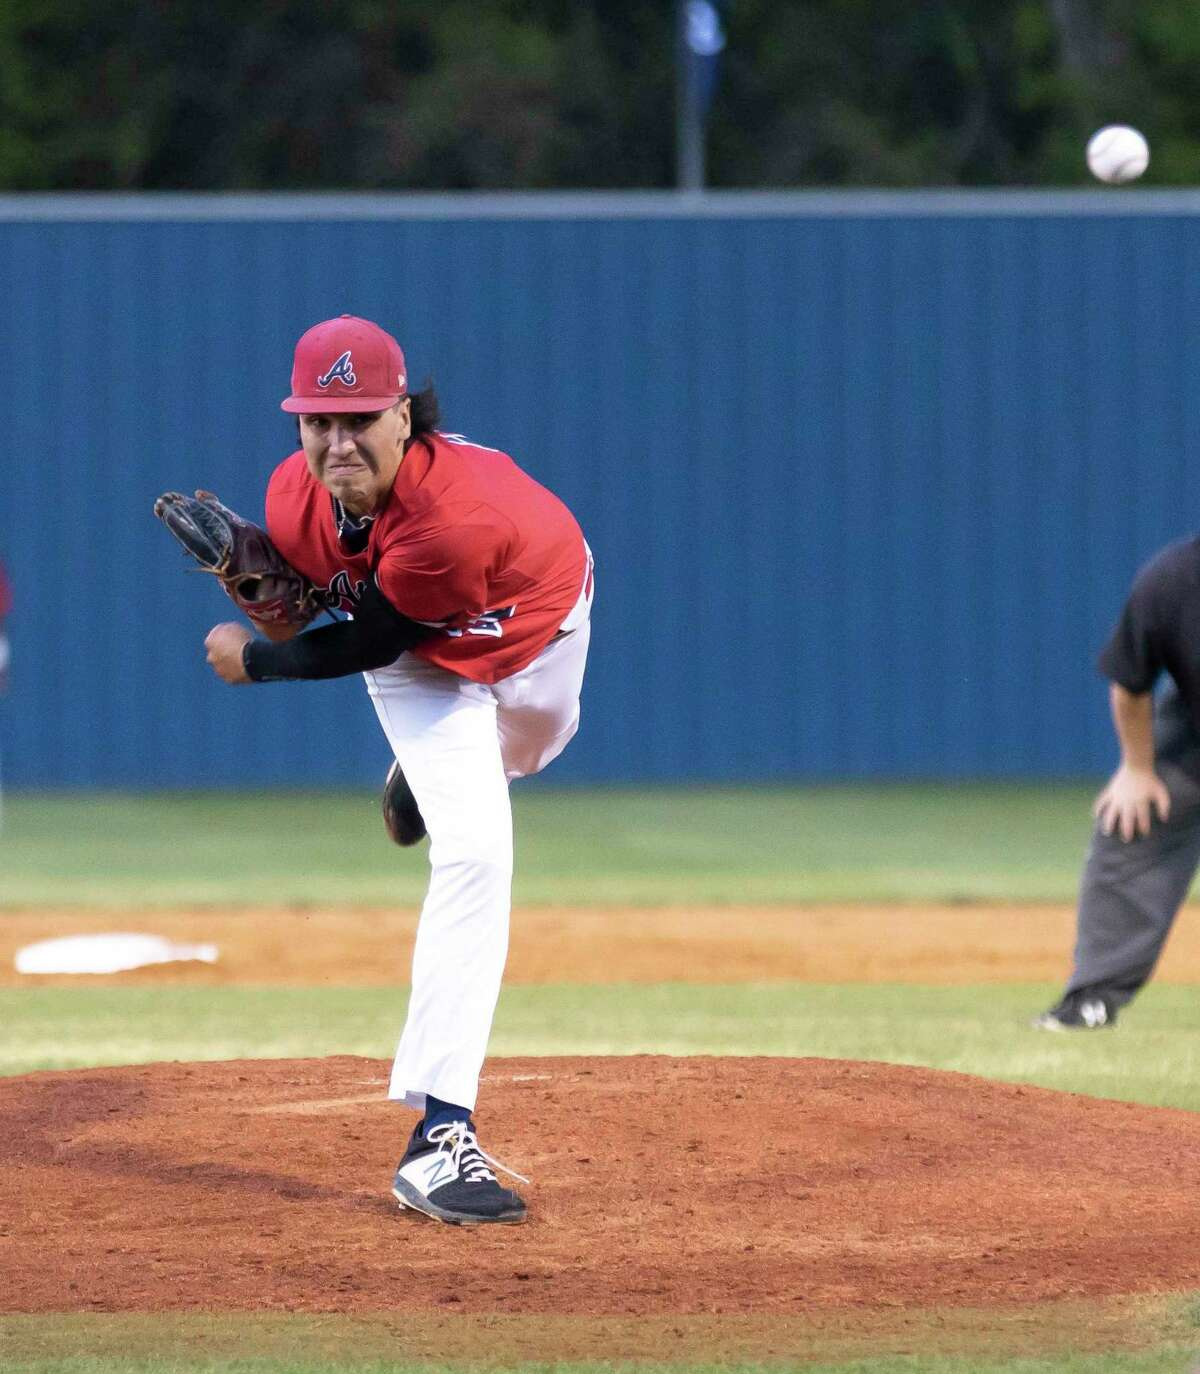 Atascocita pitcher Joey Burgess (21) throws the ball during the second inning of a District 21-6A baseball game against Kingwood at Kingwood High School, Tuesday, March 24, 2021, in Kingwood.